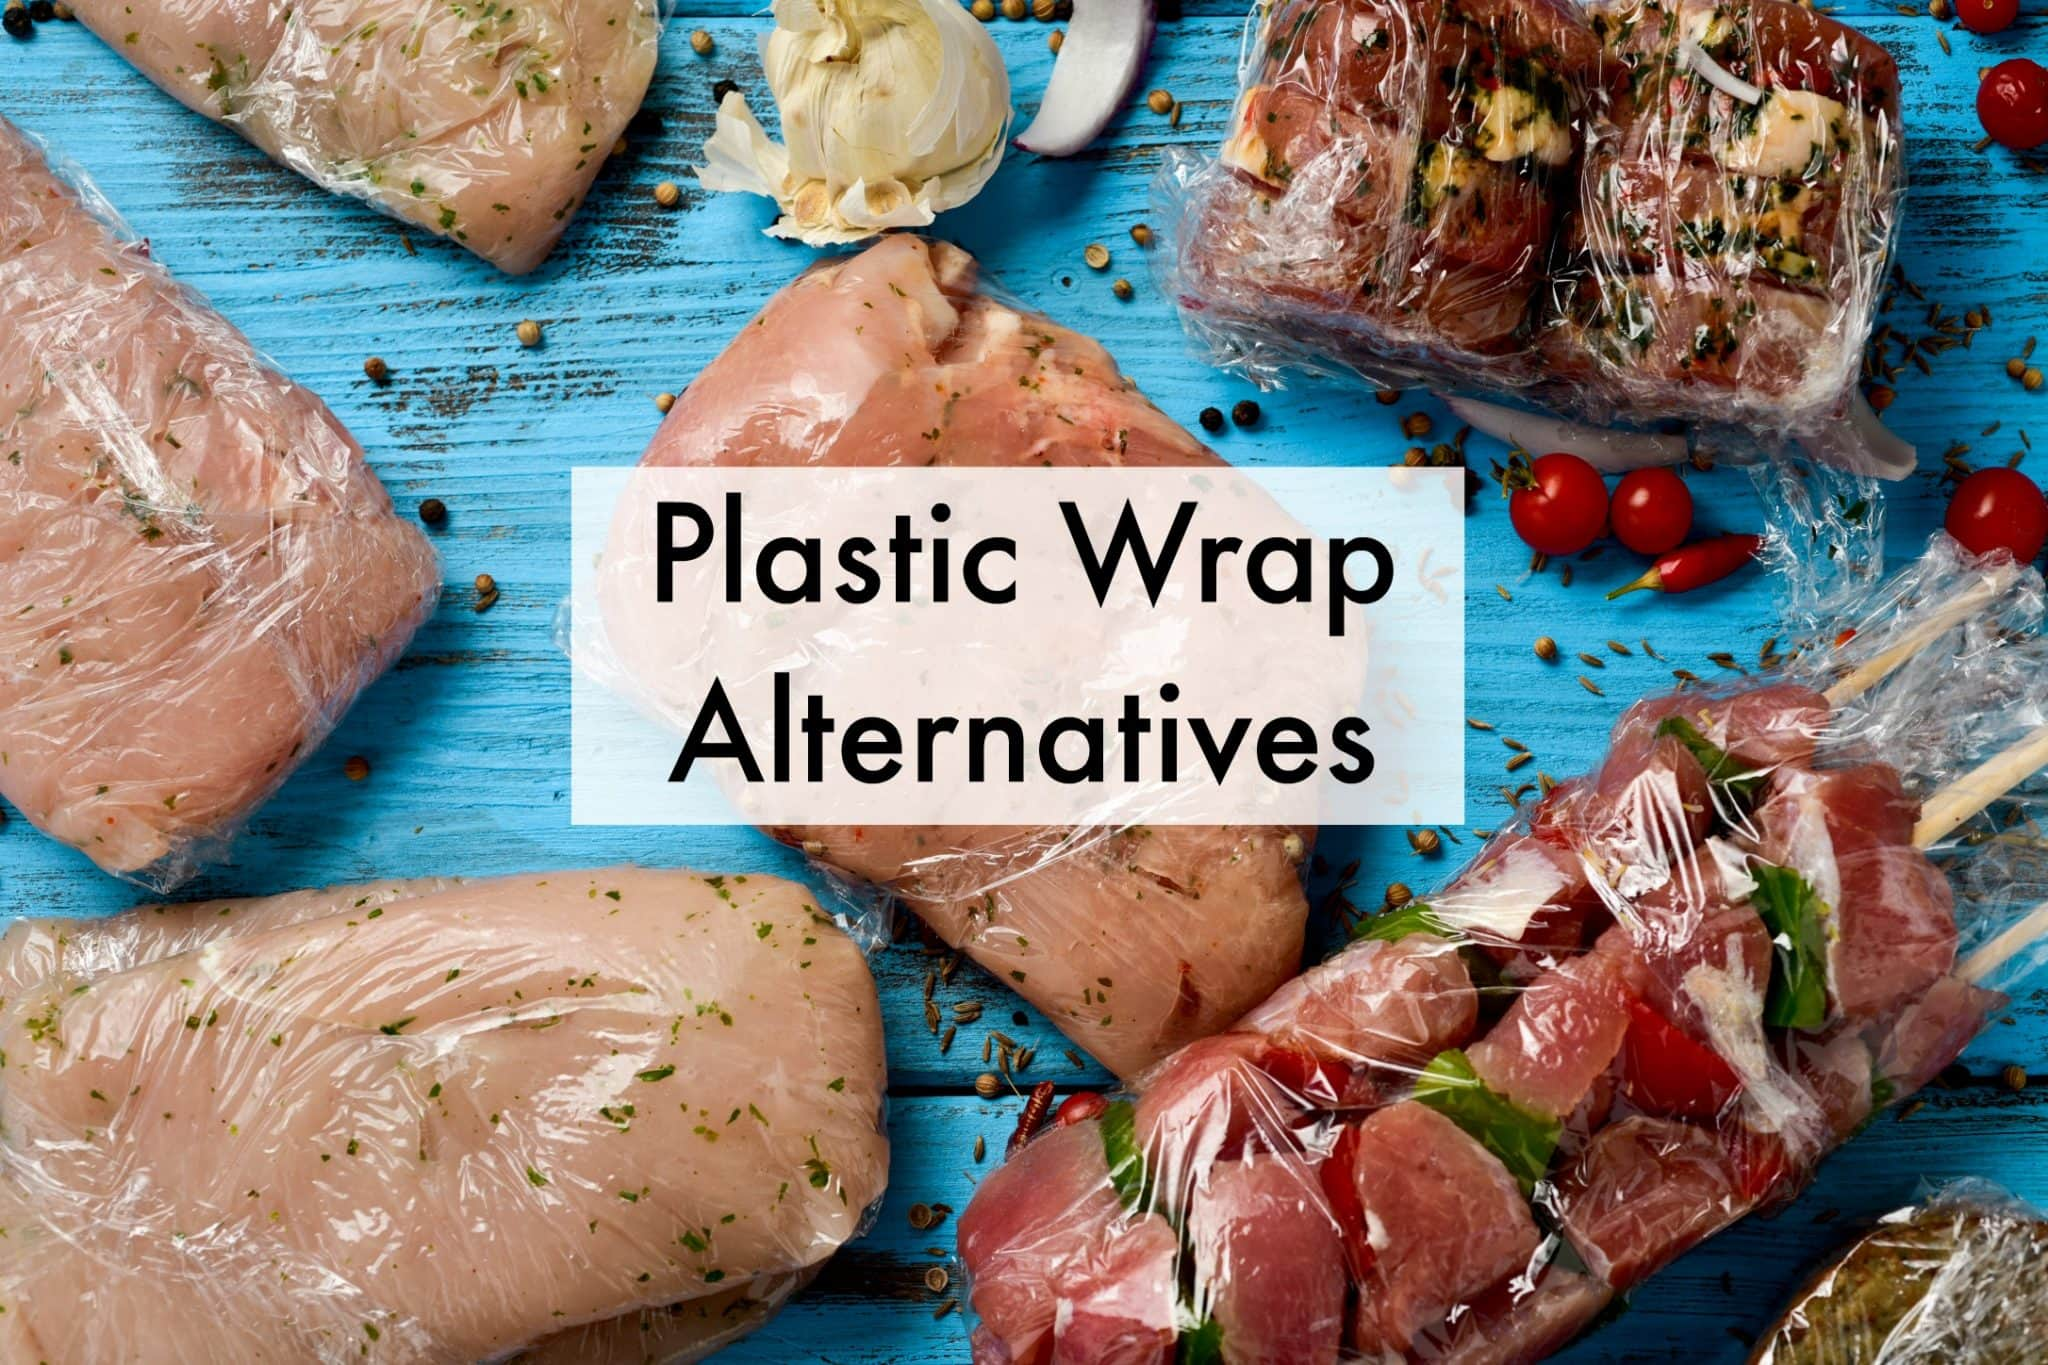 Plastic Wrap Alternatives For Storing and Heating Food - Get Green